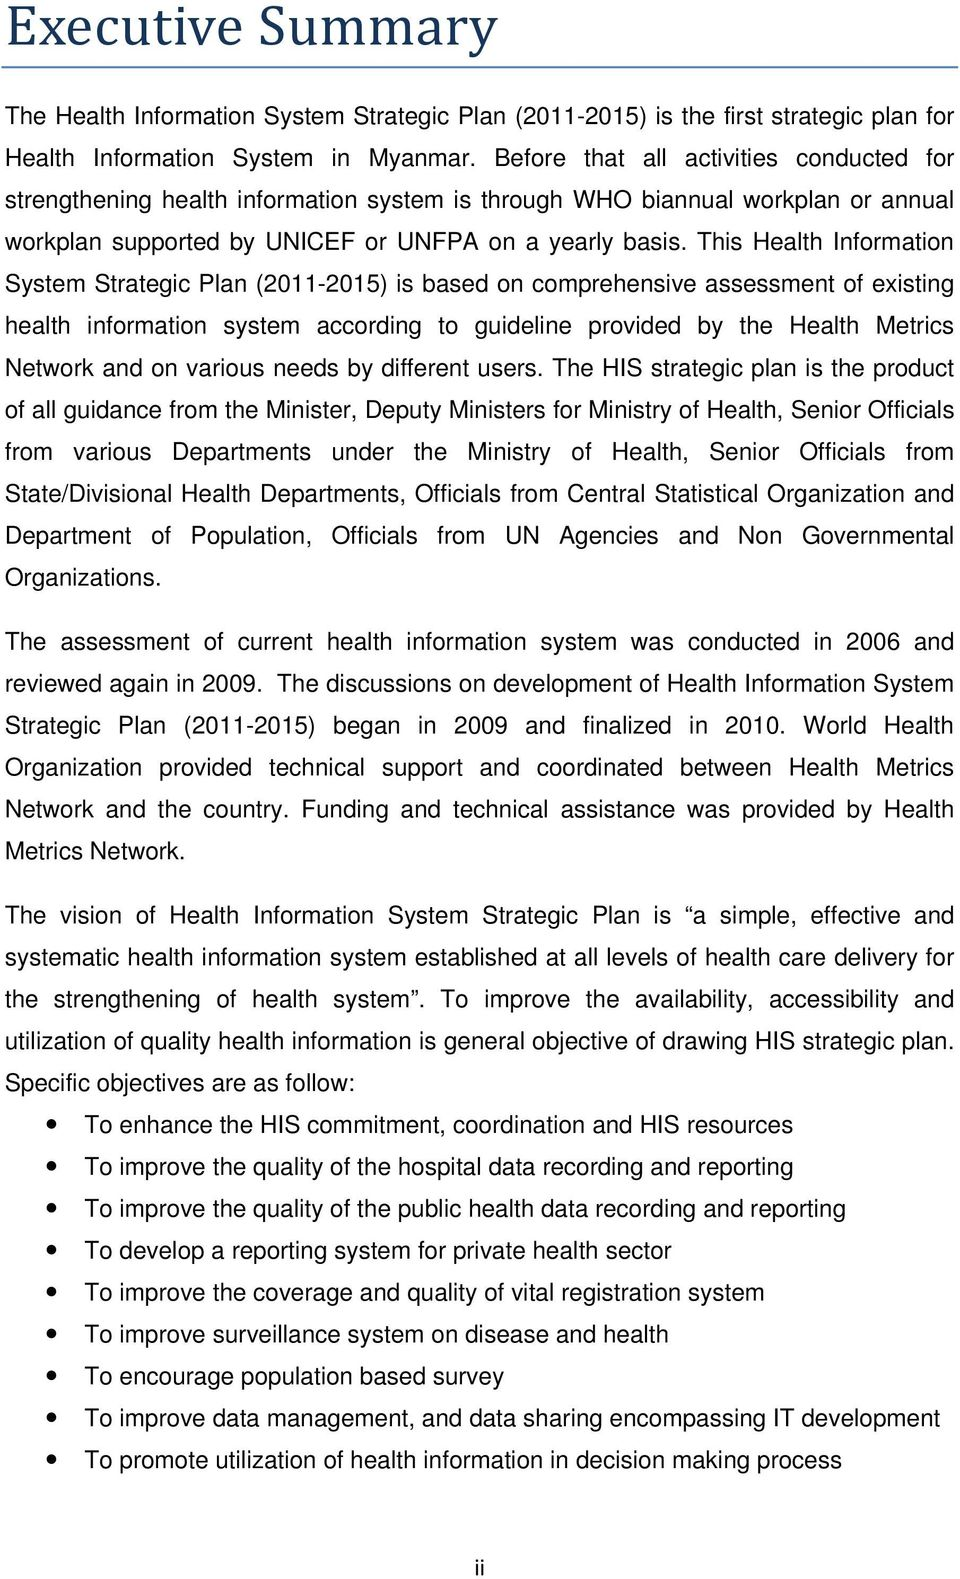 This Health Information System Strategic Plan (2011-2015) is based on comprehensive assessment of existing health information system according to guideline provided by the Health Metrics Network and